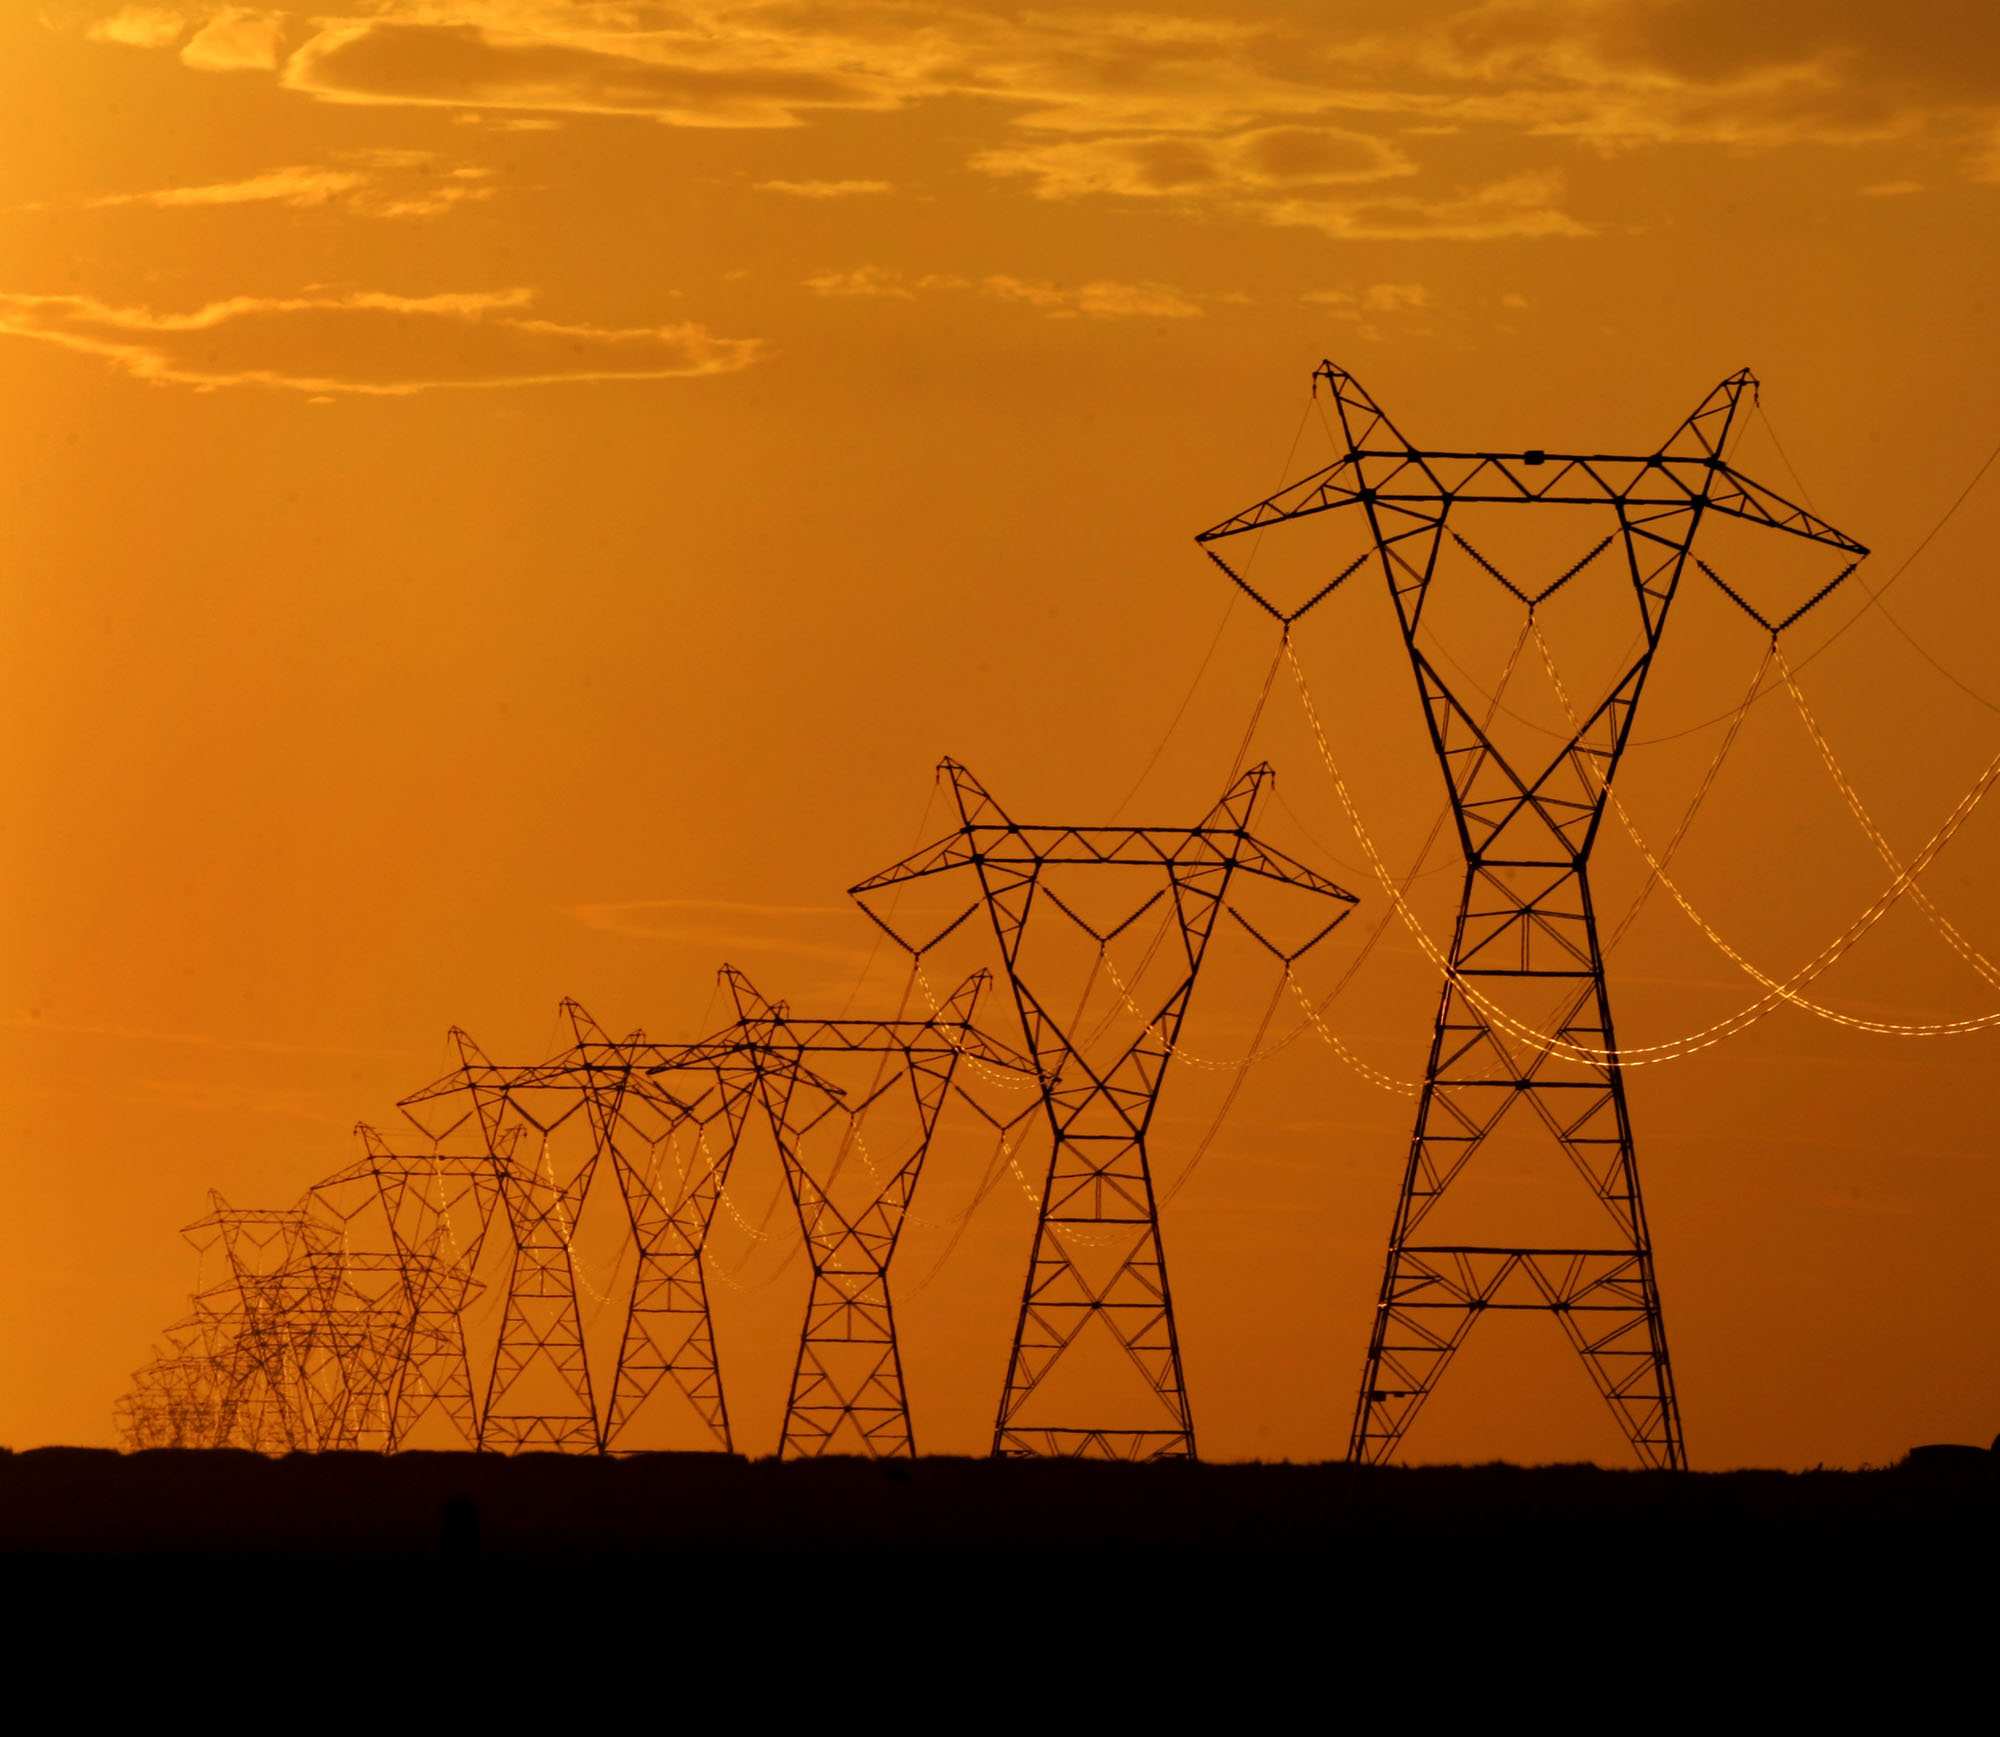 Power companies lose fight over transmission costs in Texas, a win for renewables